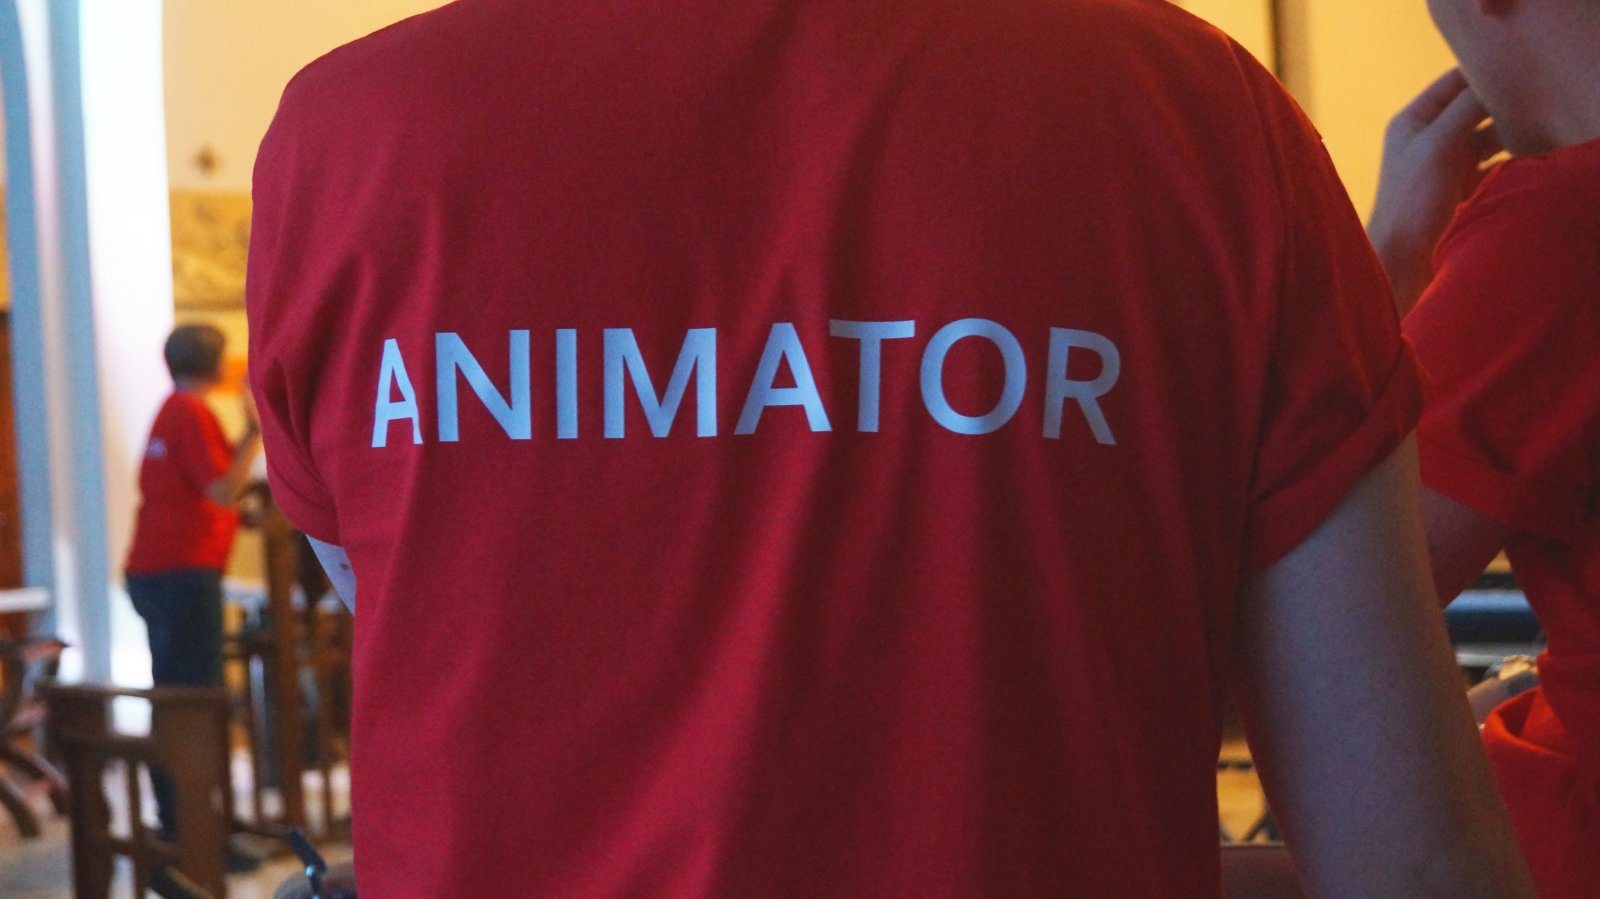 Salesian Youth Ministry animator t-shirt